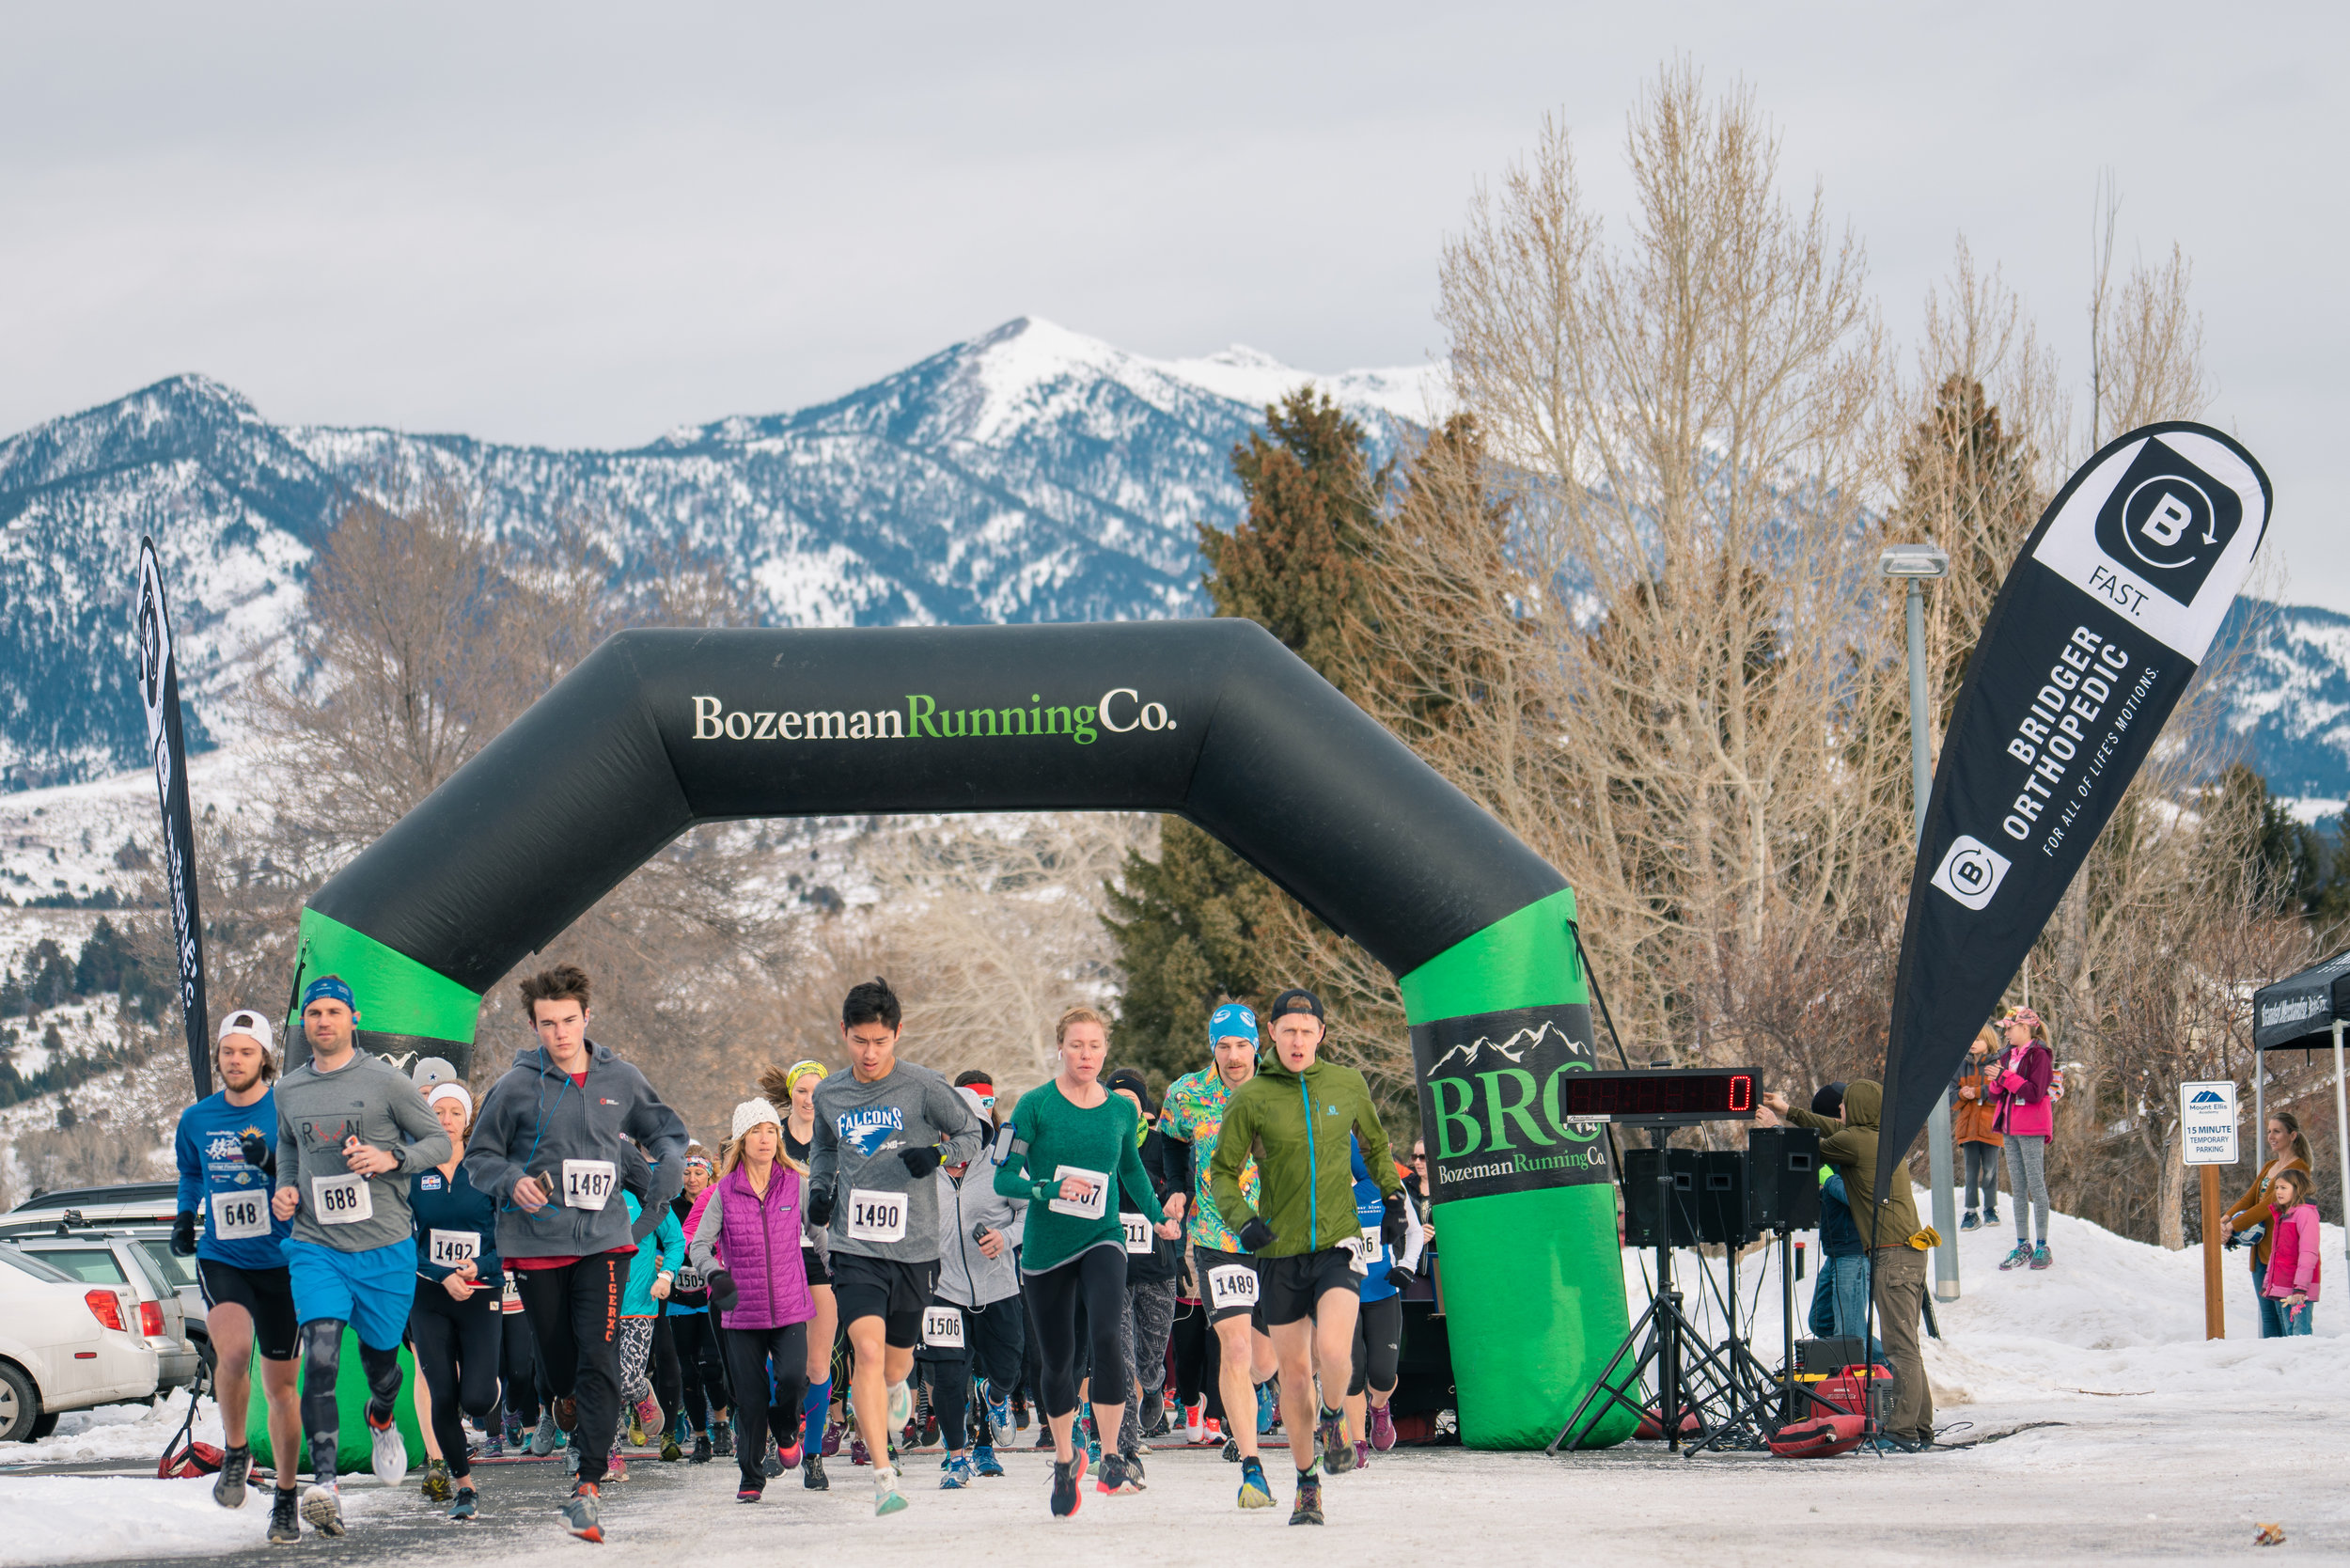 The start of Bozeman Running Co.'s racing of the Bear near Bozeman, Montana.